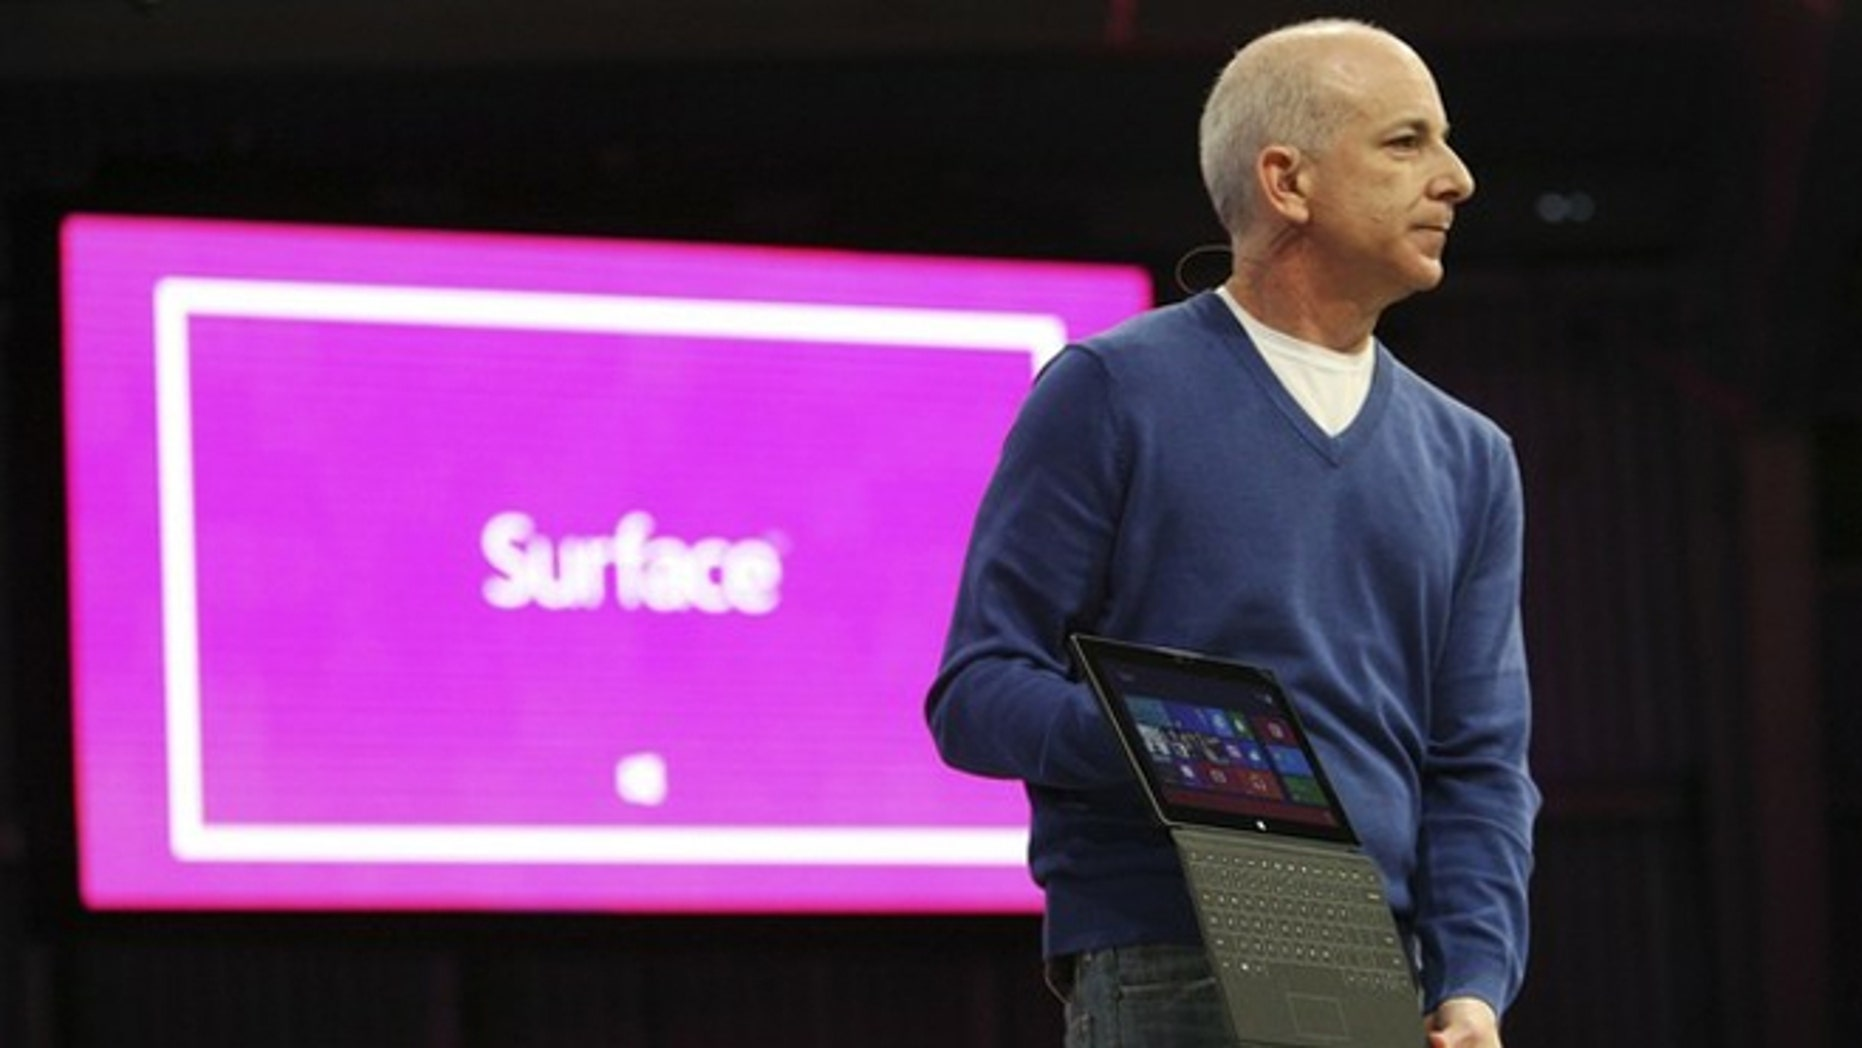 Microsoft's Steven Sinofsky introduces the company's line of tablet computers on Monday at a media event in Los Angeles, marking a major strategic shift as the software giant struggles to compete with Apple and re-invent Windows.